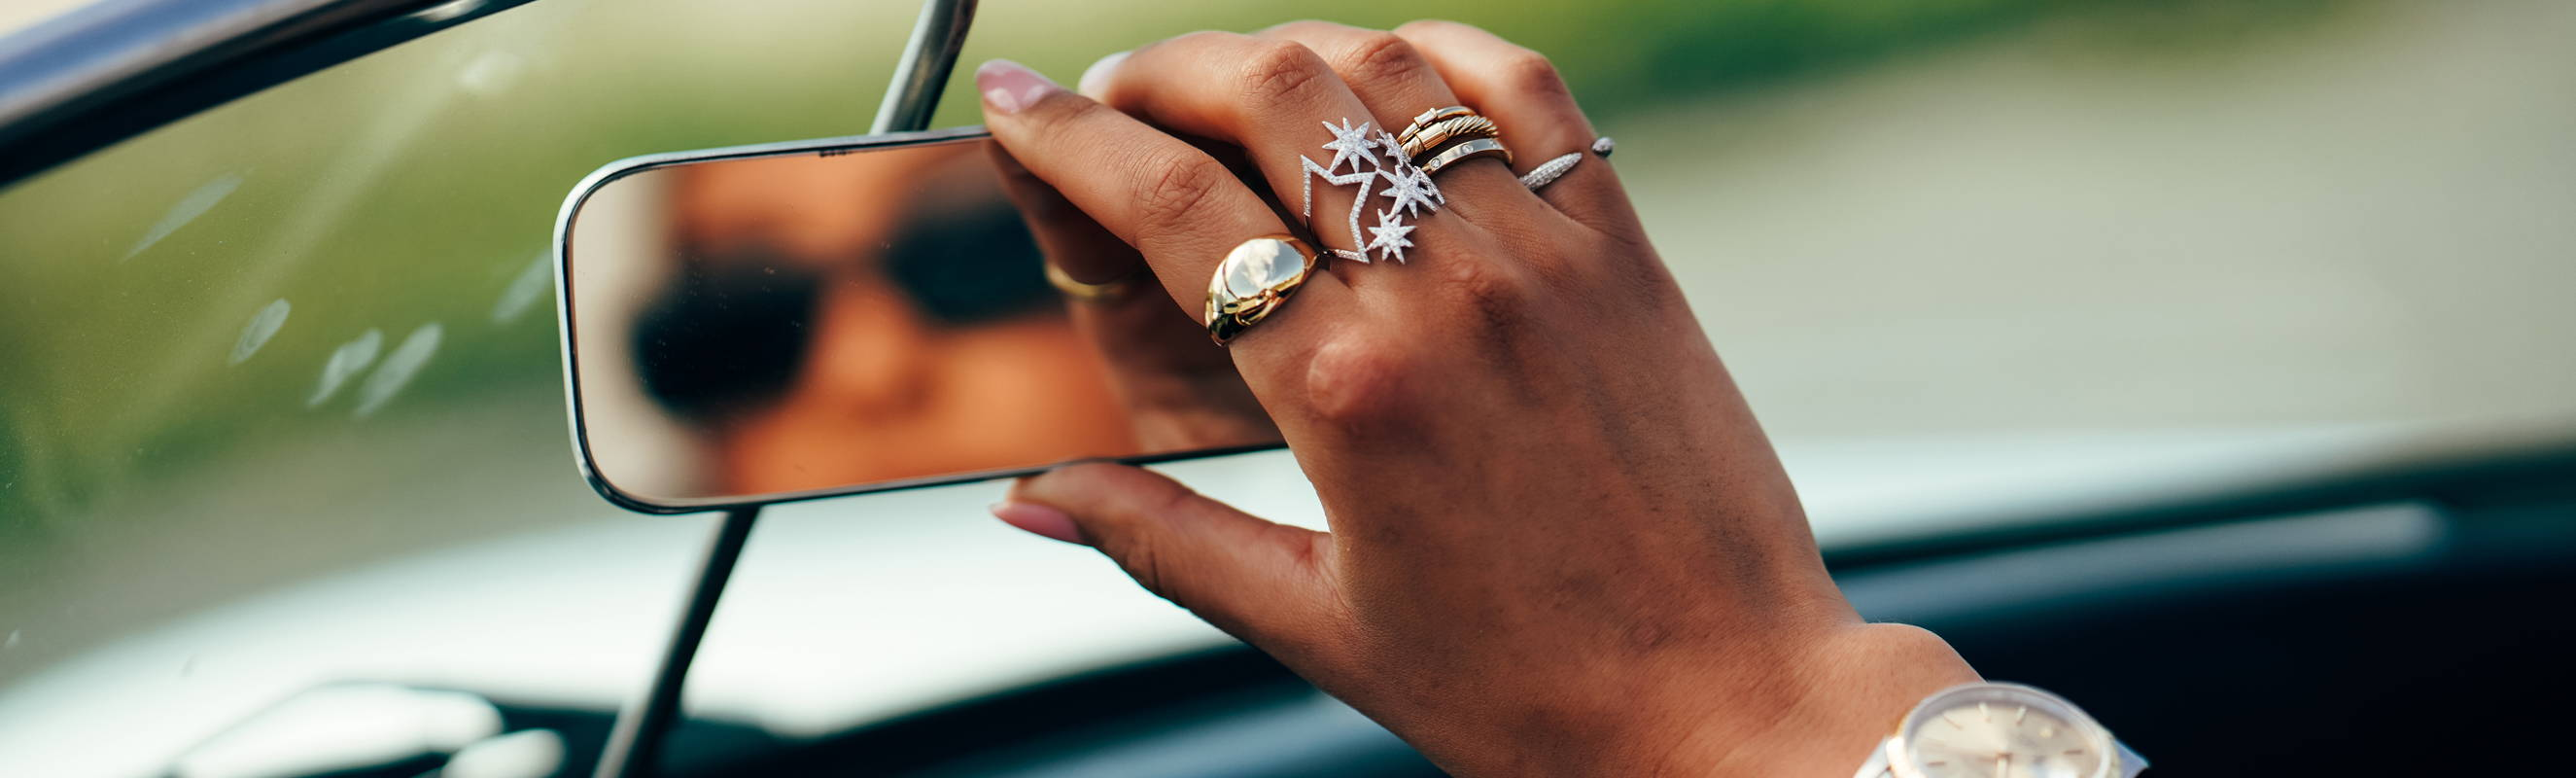 Model adjusting car mirror wearing Ring Concierge fine jewelry